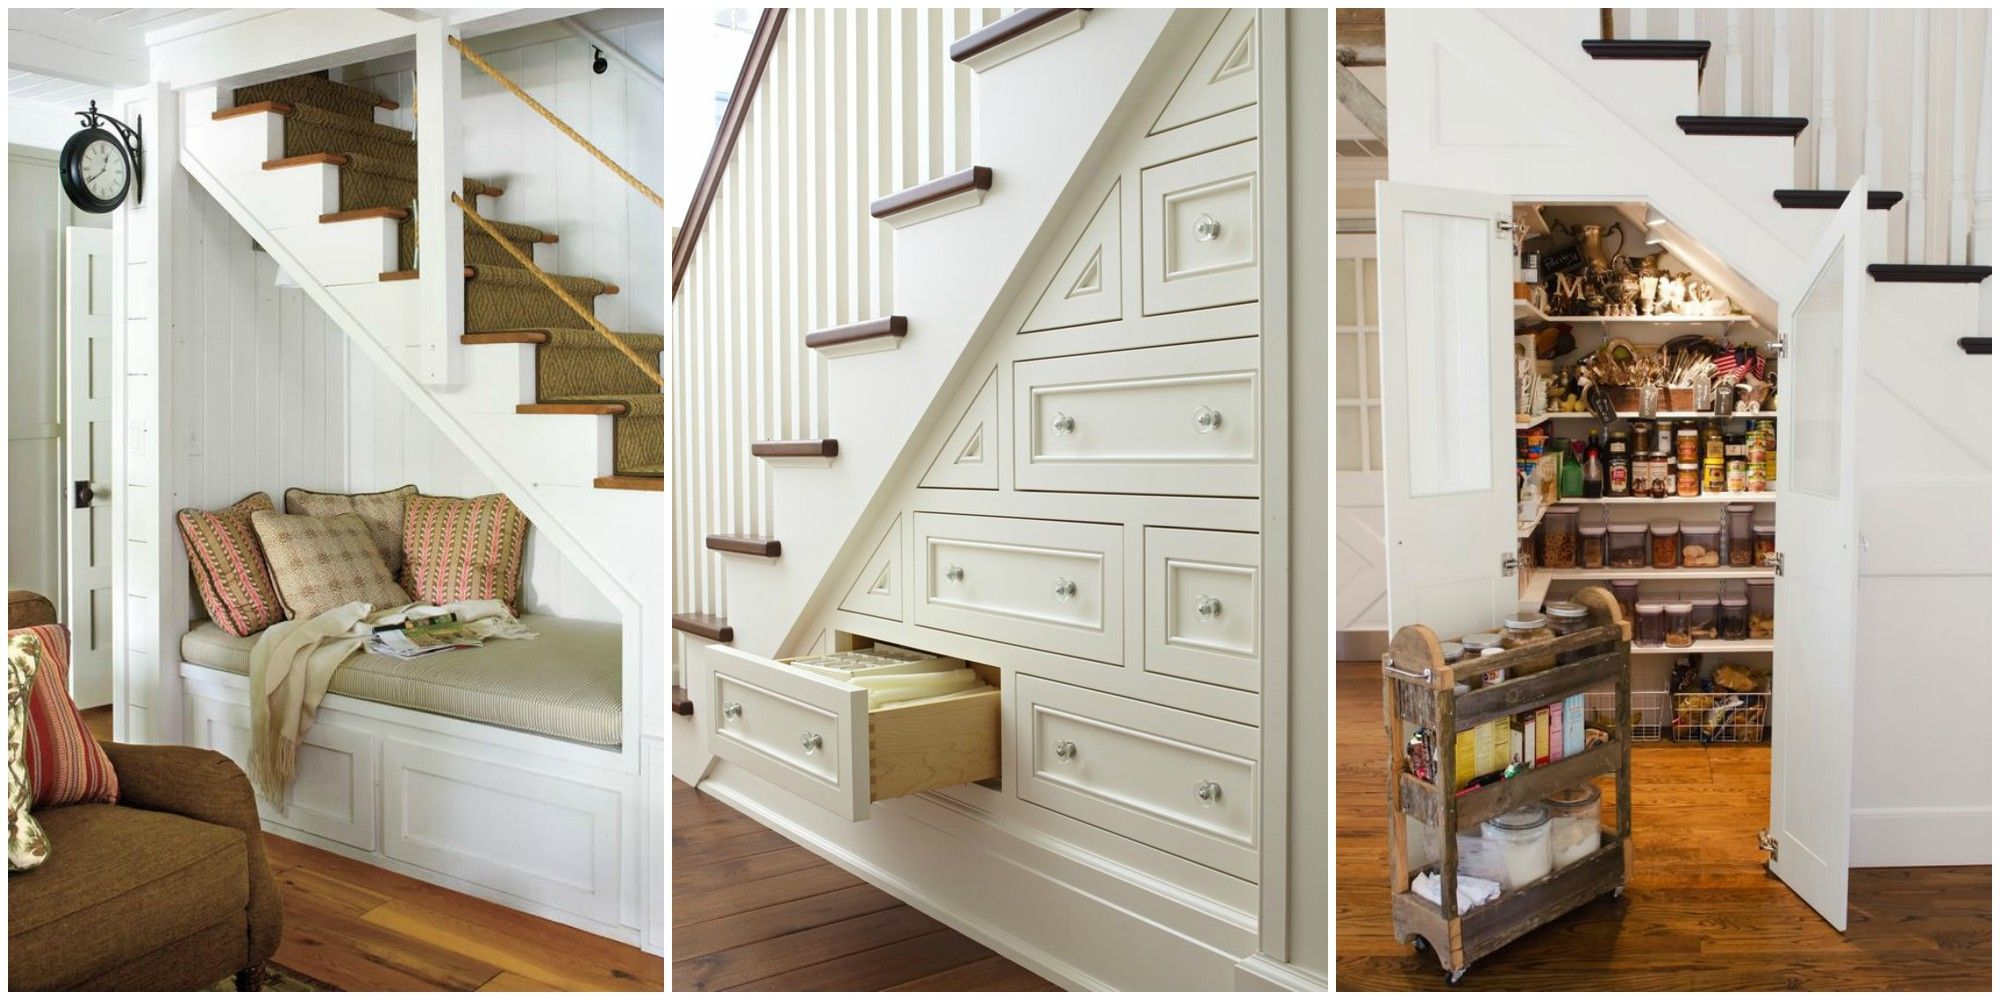 15 Genius under Stairs Storage Ideas - What to Do With Empty Space ...